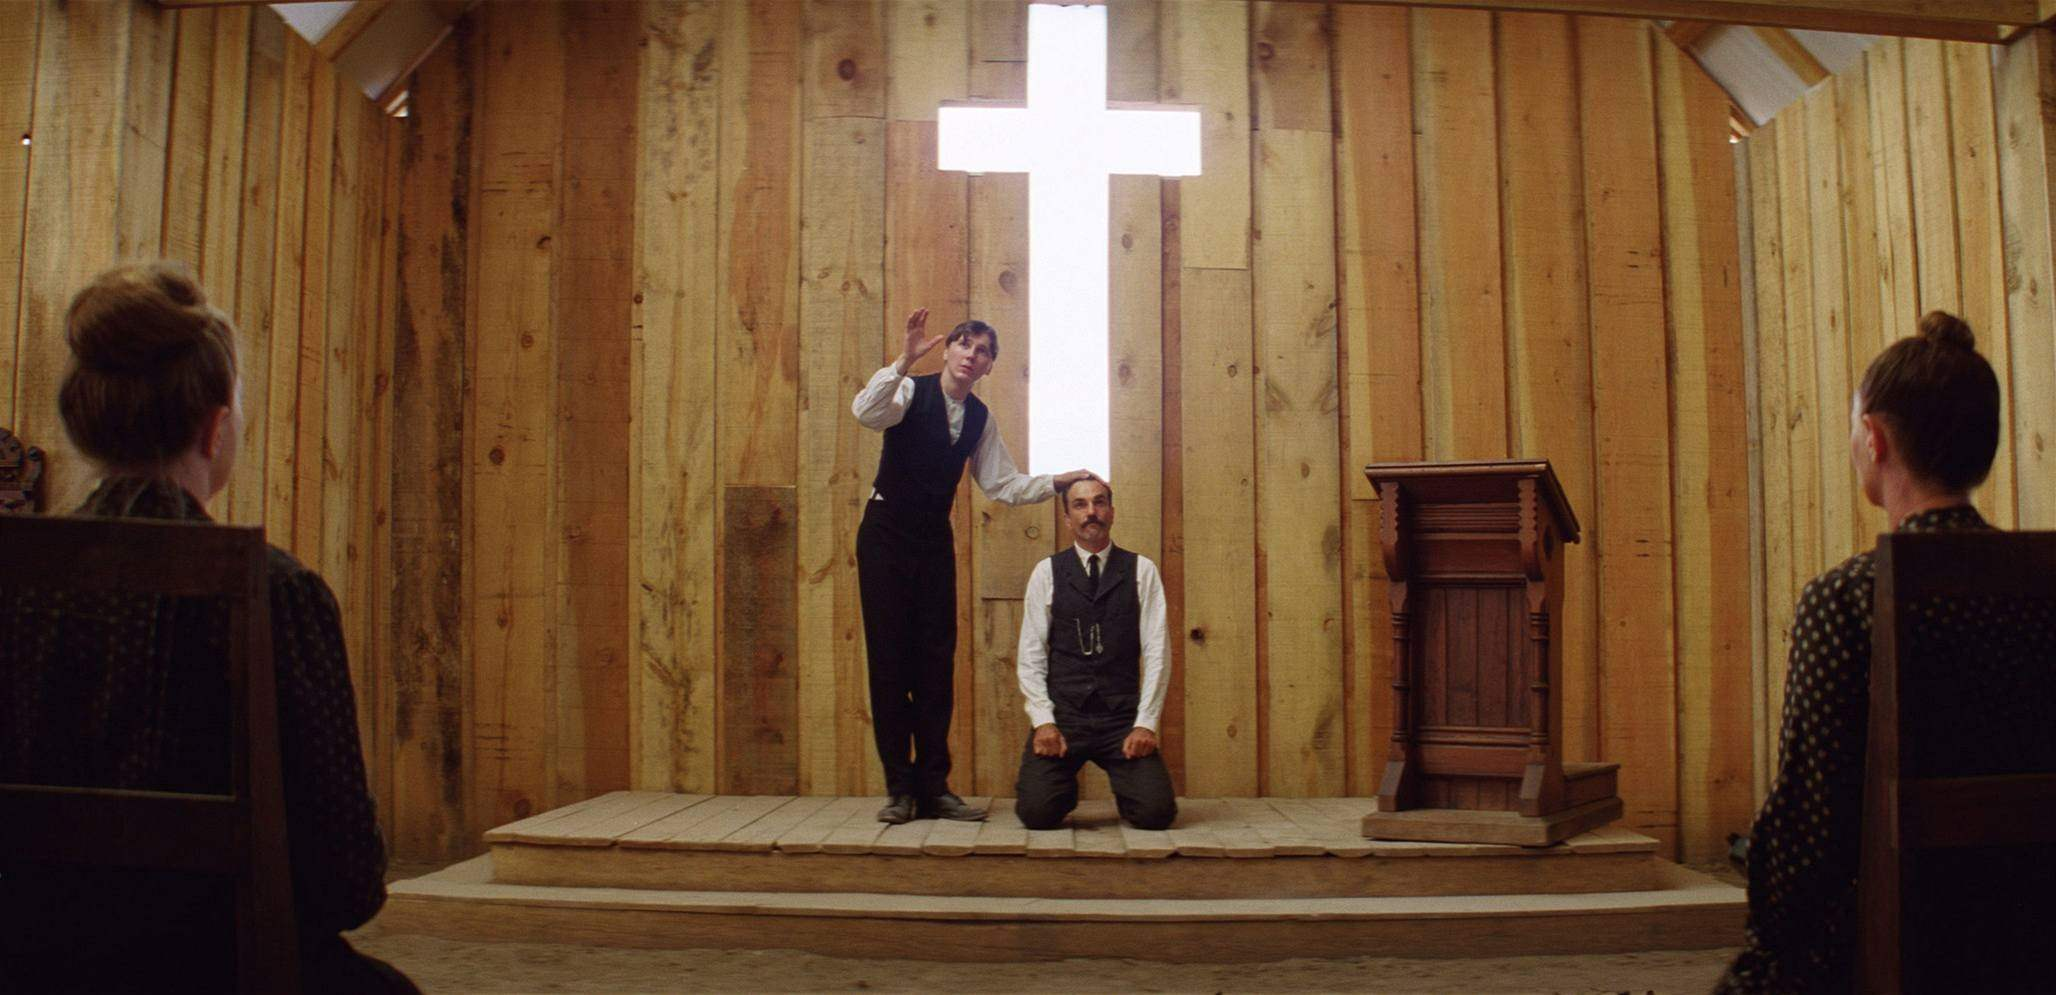 Paul Dano and Daniel Day-Lewis in There Will Be Blood